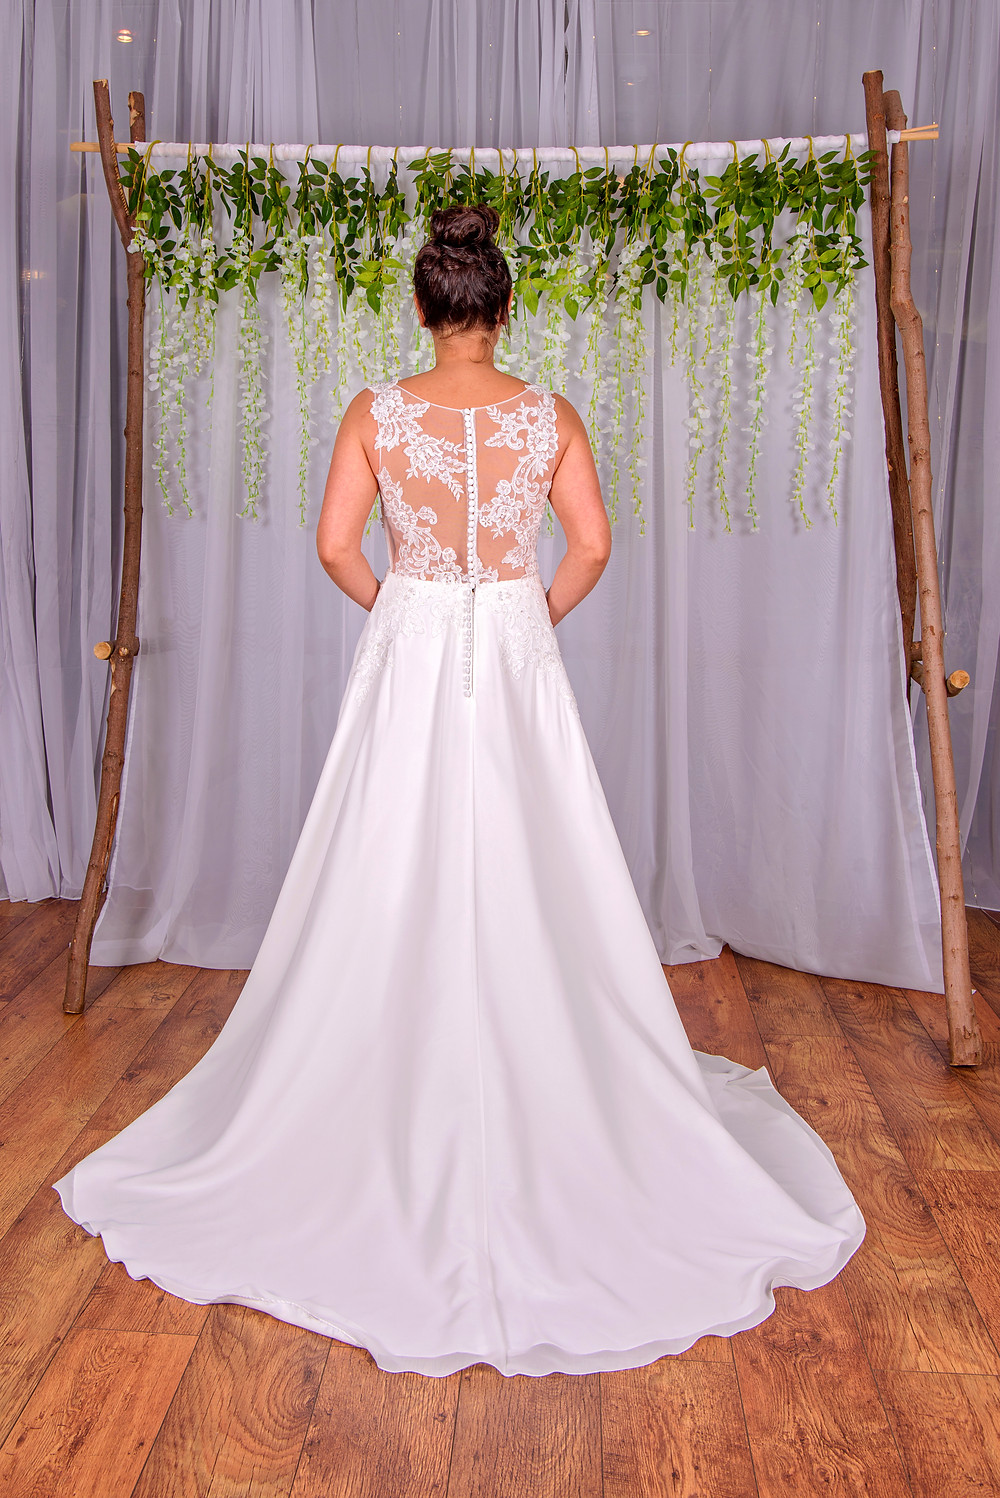 floral back wedding dress a line with chiffon skirt